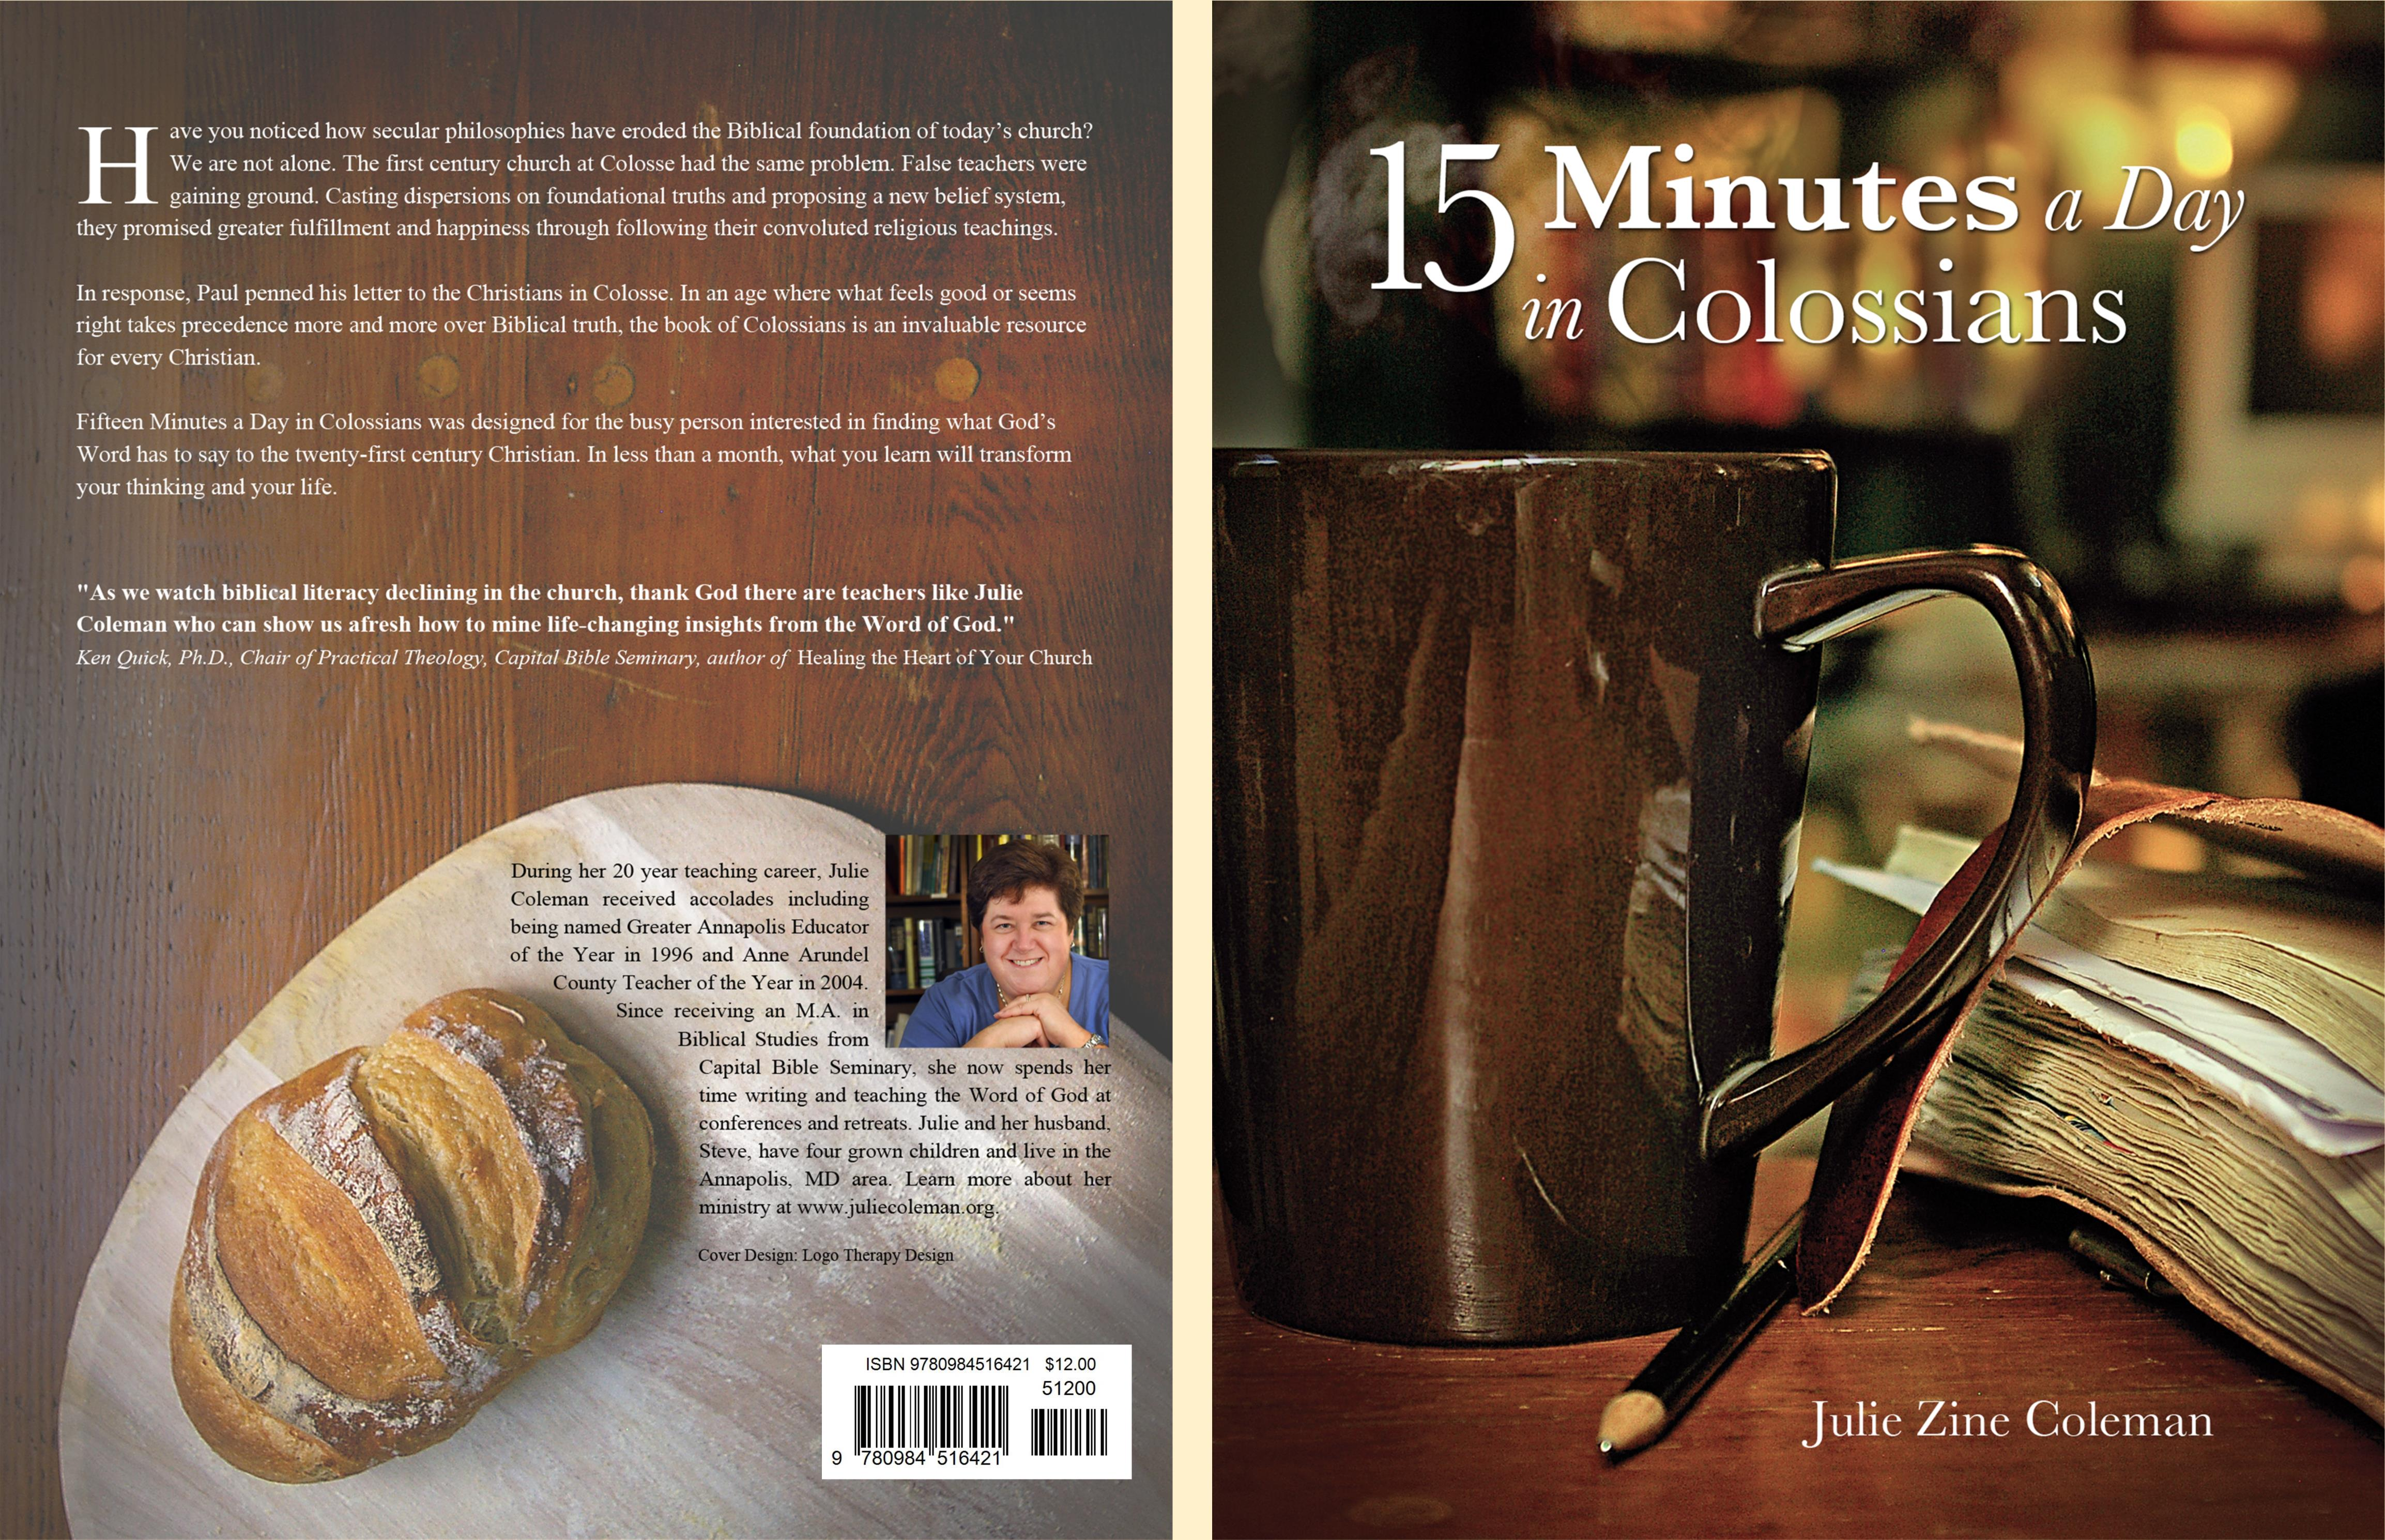 15 Minutes a Day in Colossians cover image